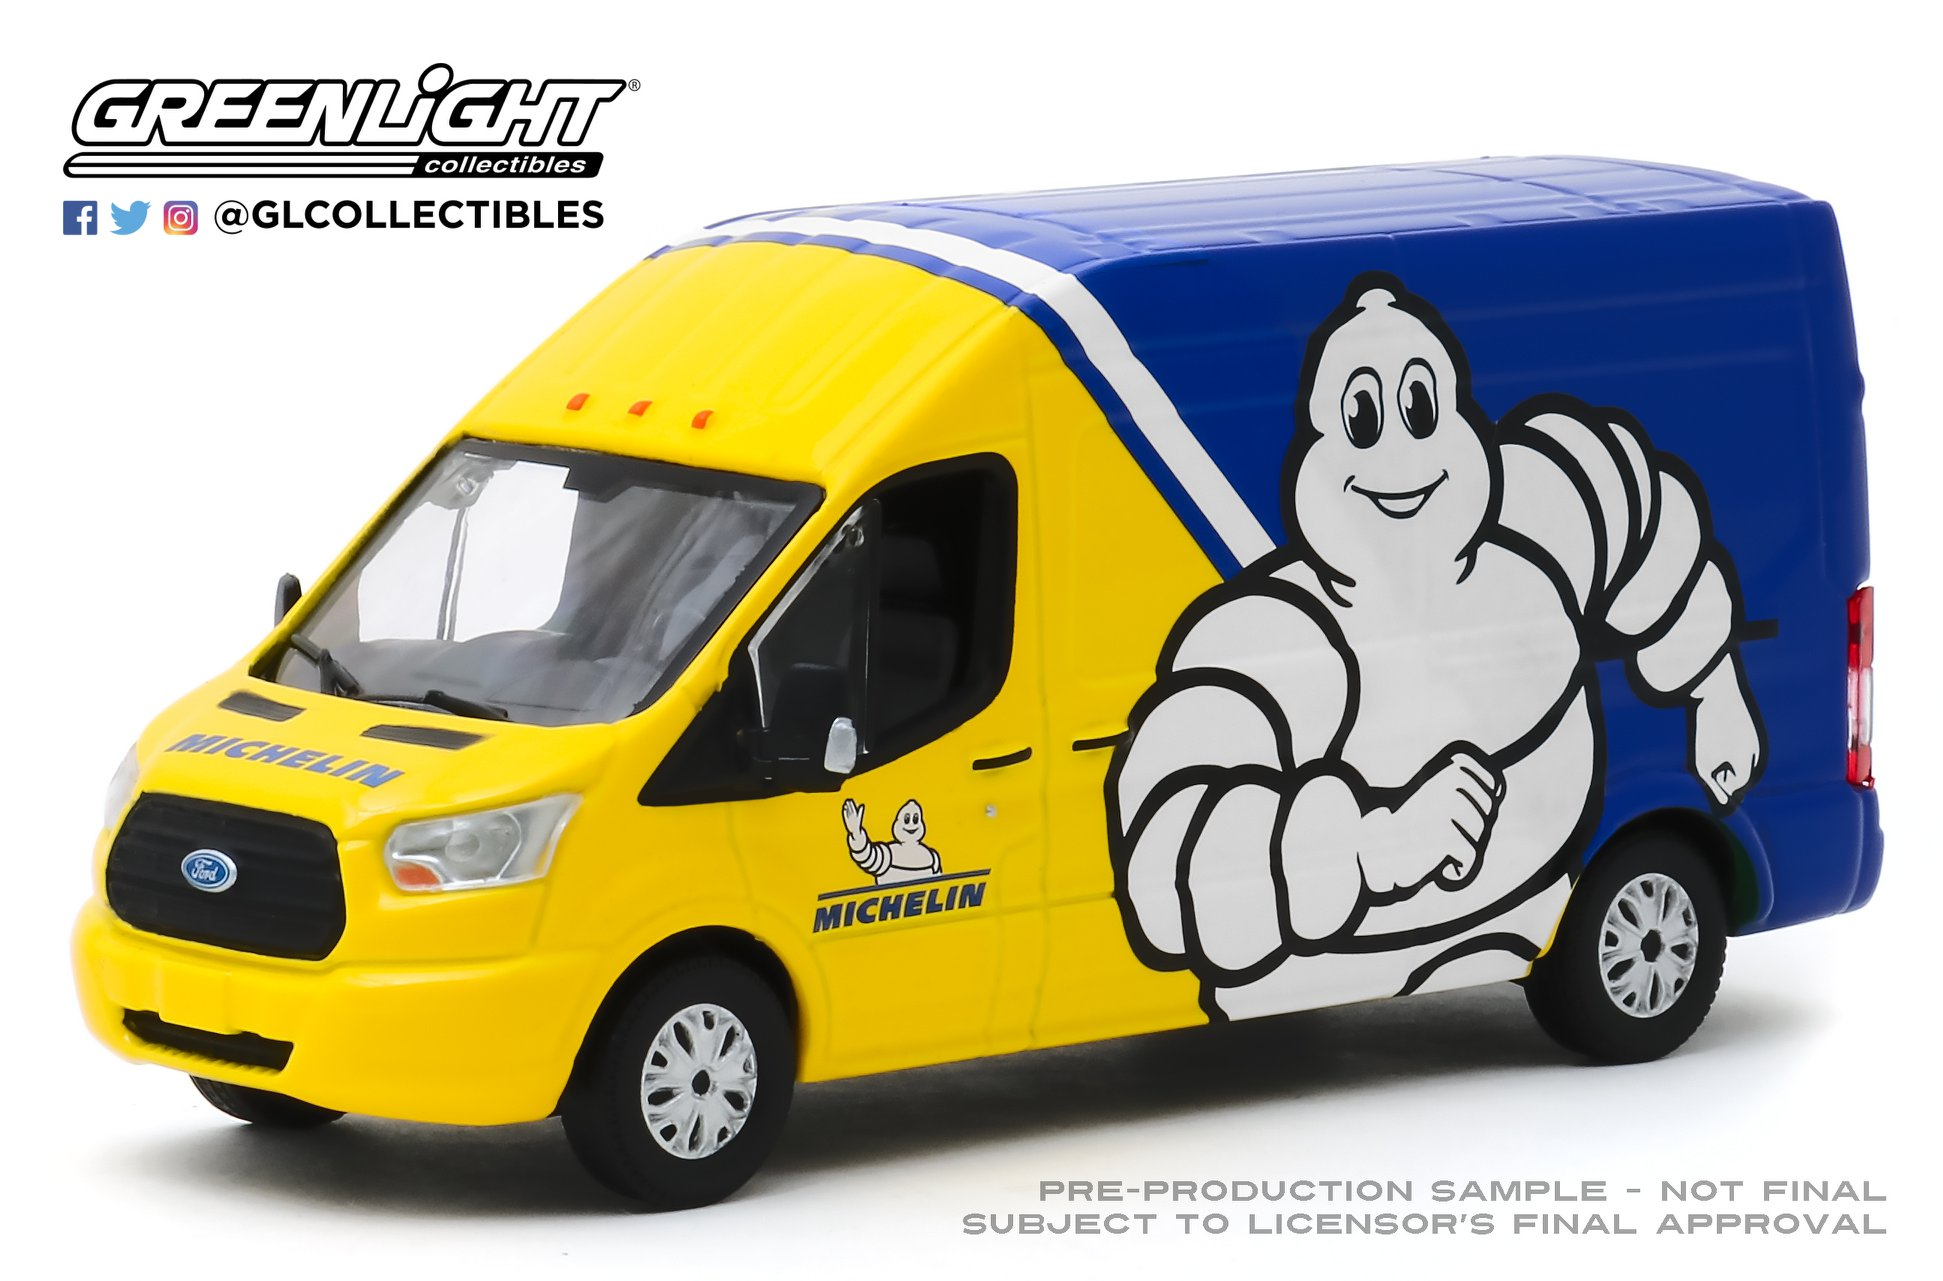 ford-transit-michelin-greenlight-1